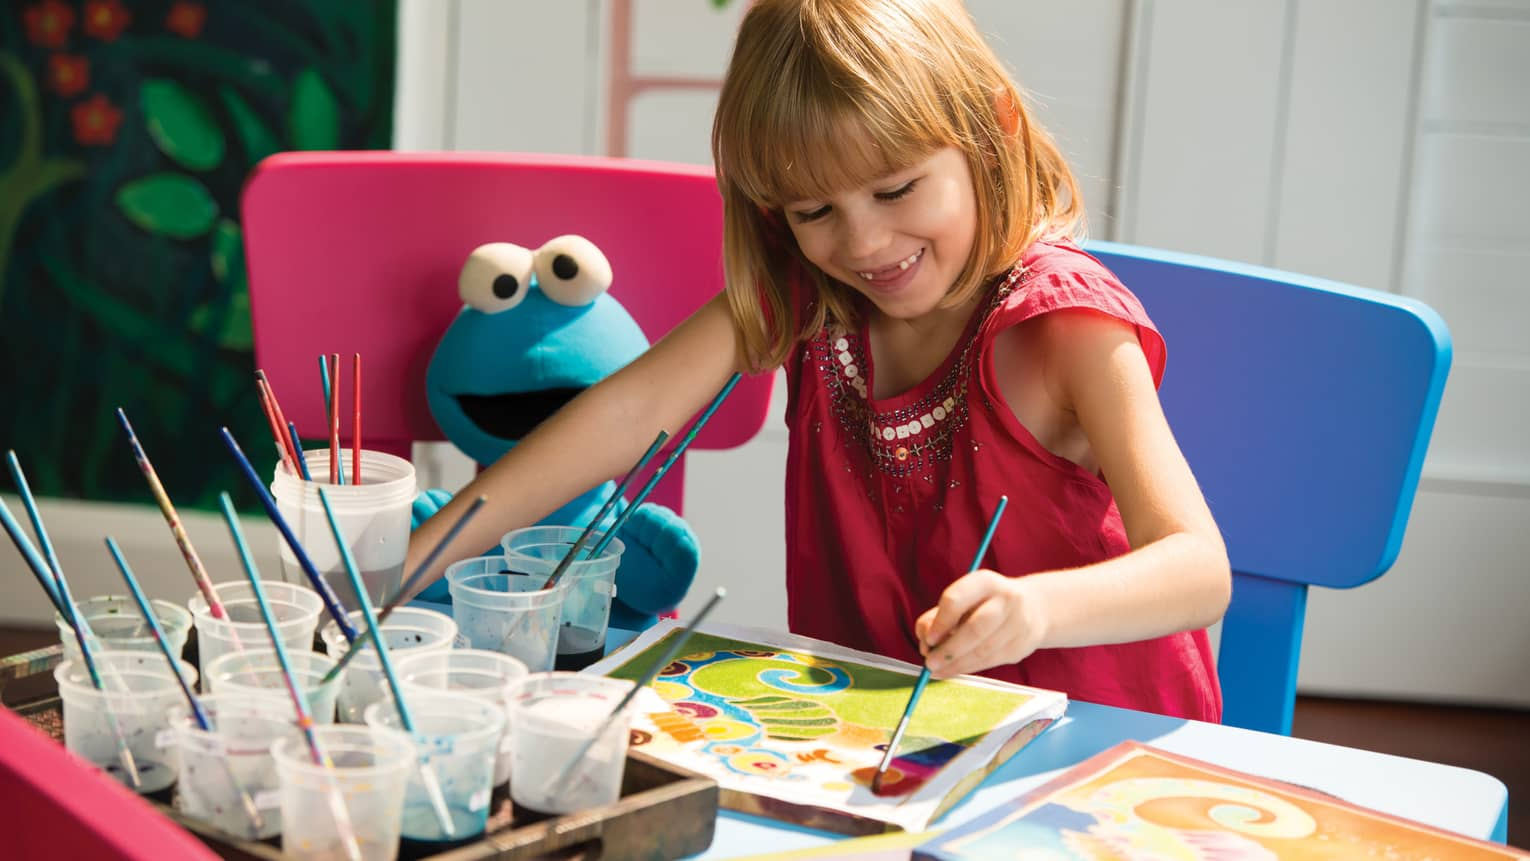 Smiling young girl paints picture at Kids Centre table beside Cookie Monster doll